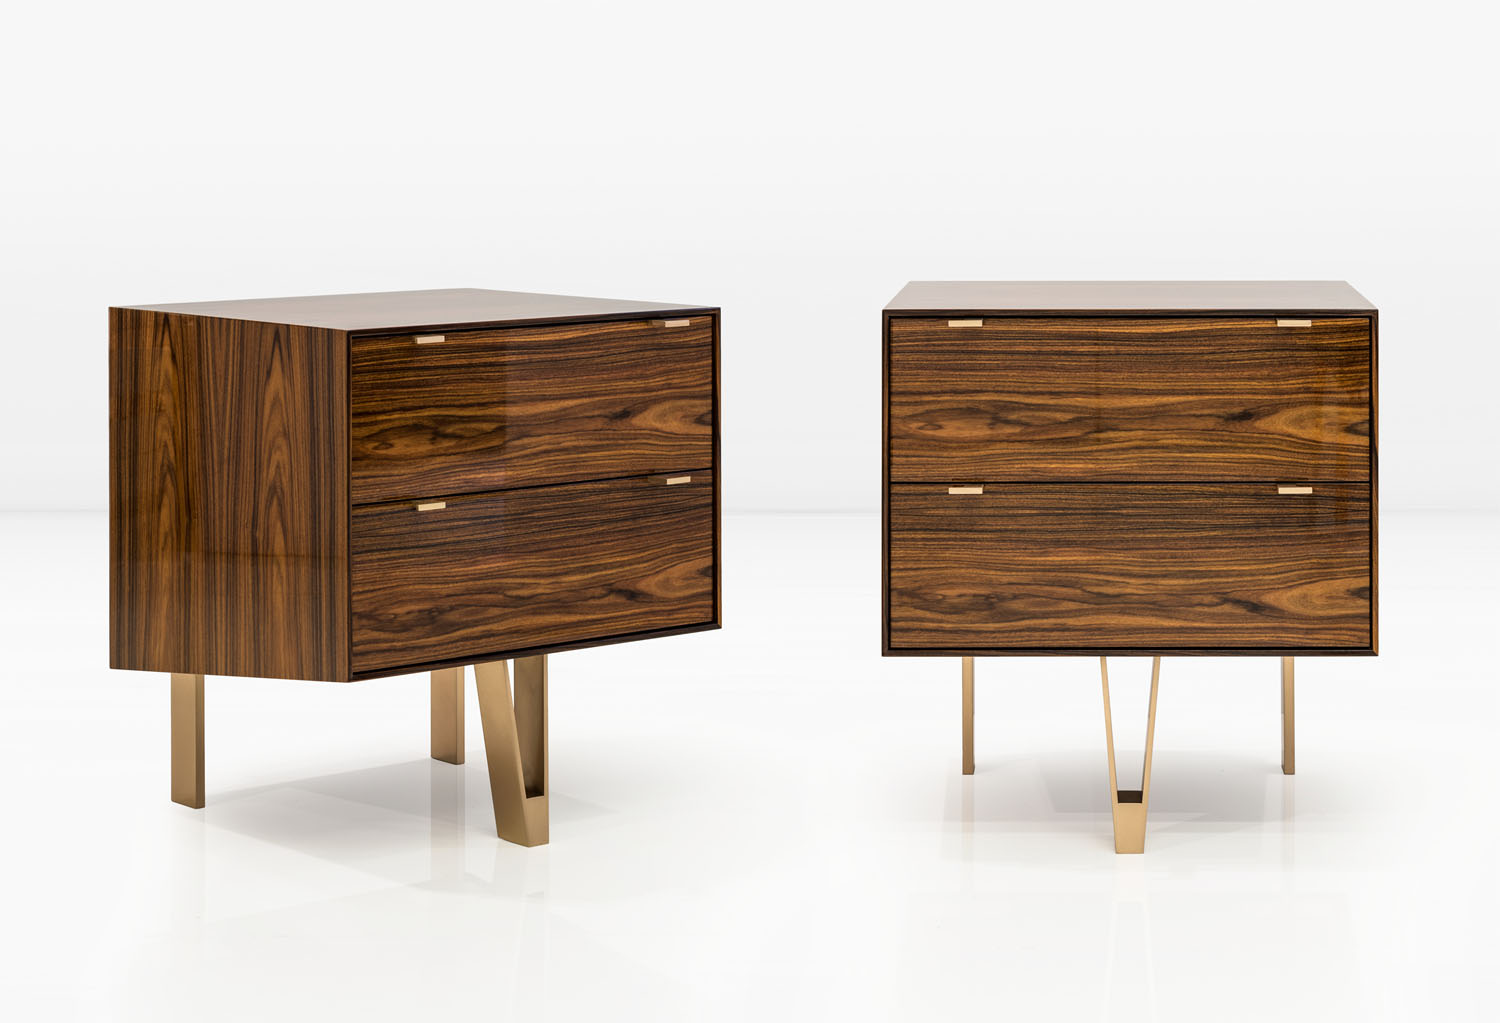 Lacquered South American Rosewood with Silicon Bronze legs and hardware